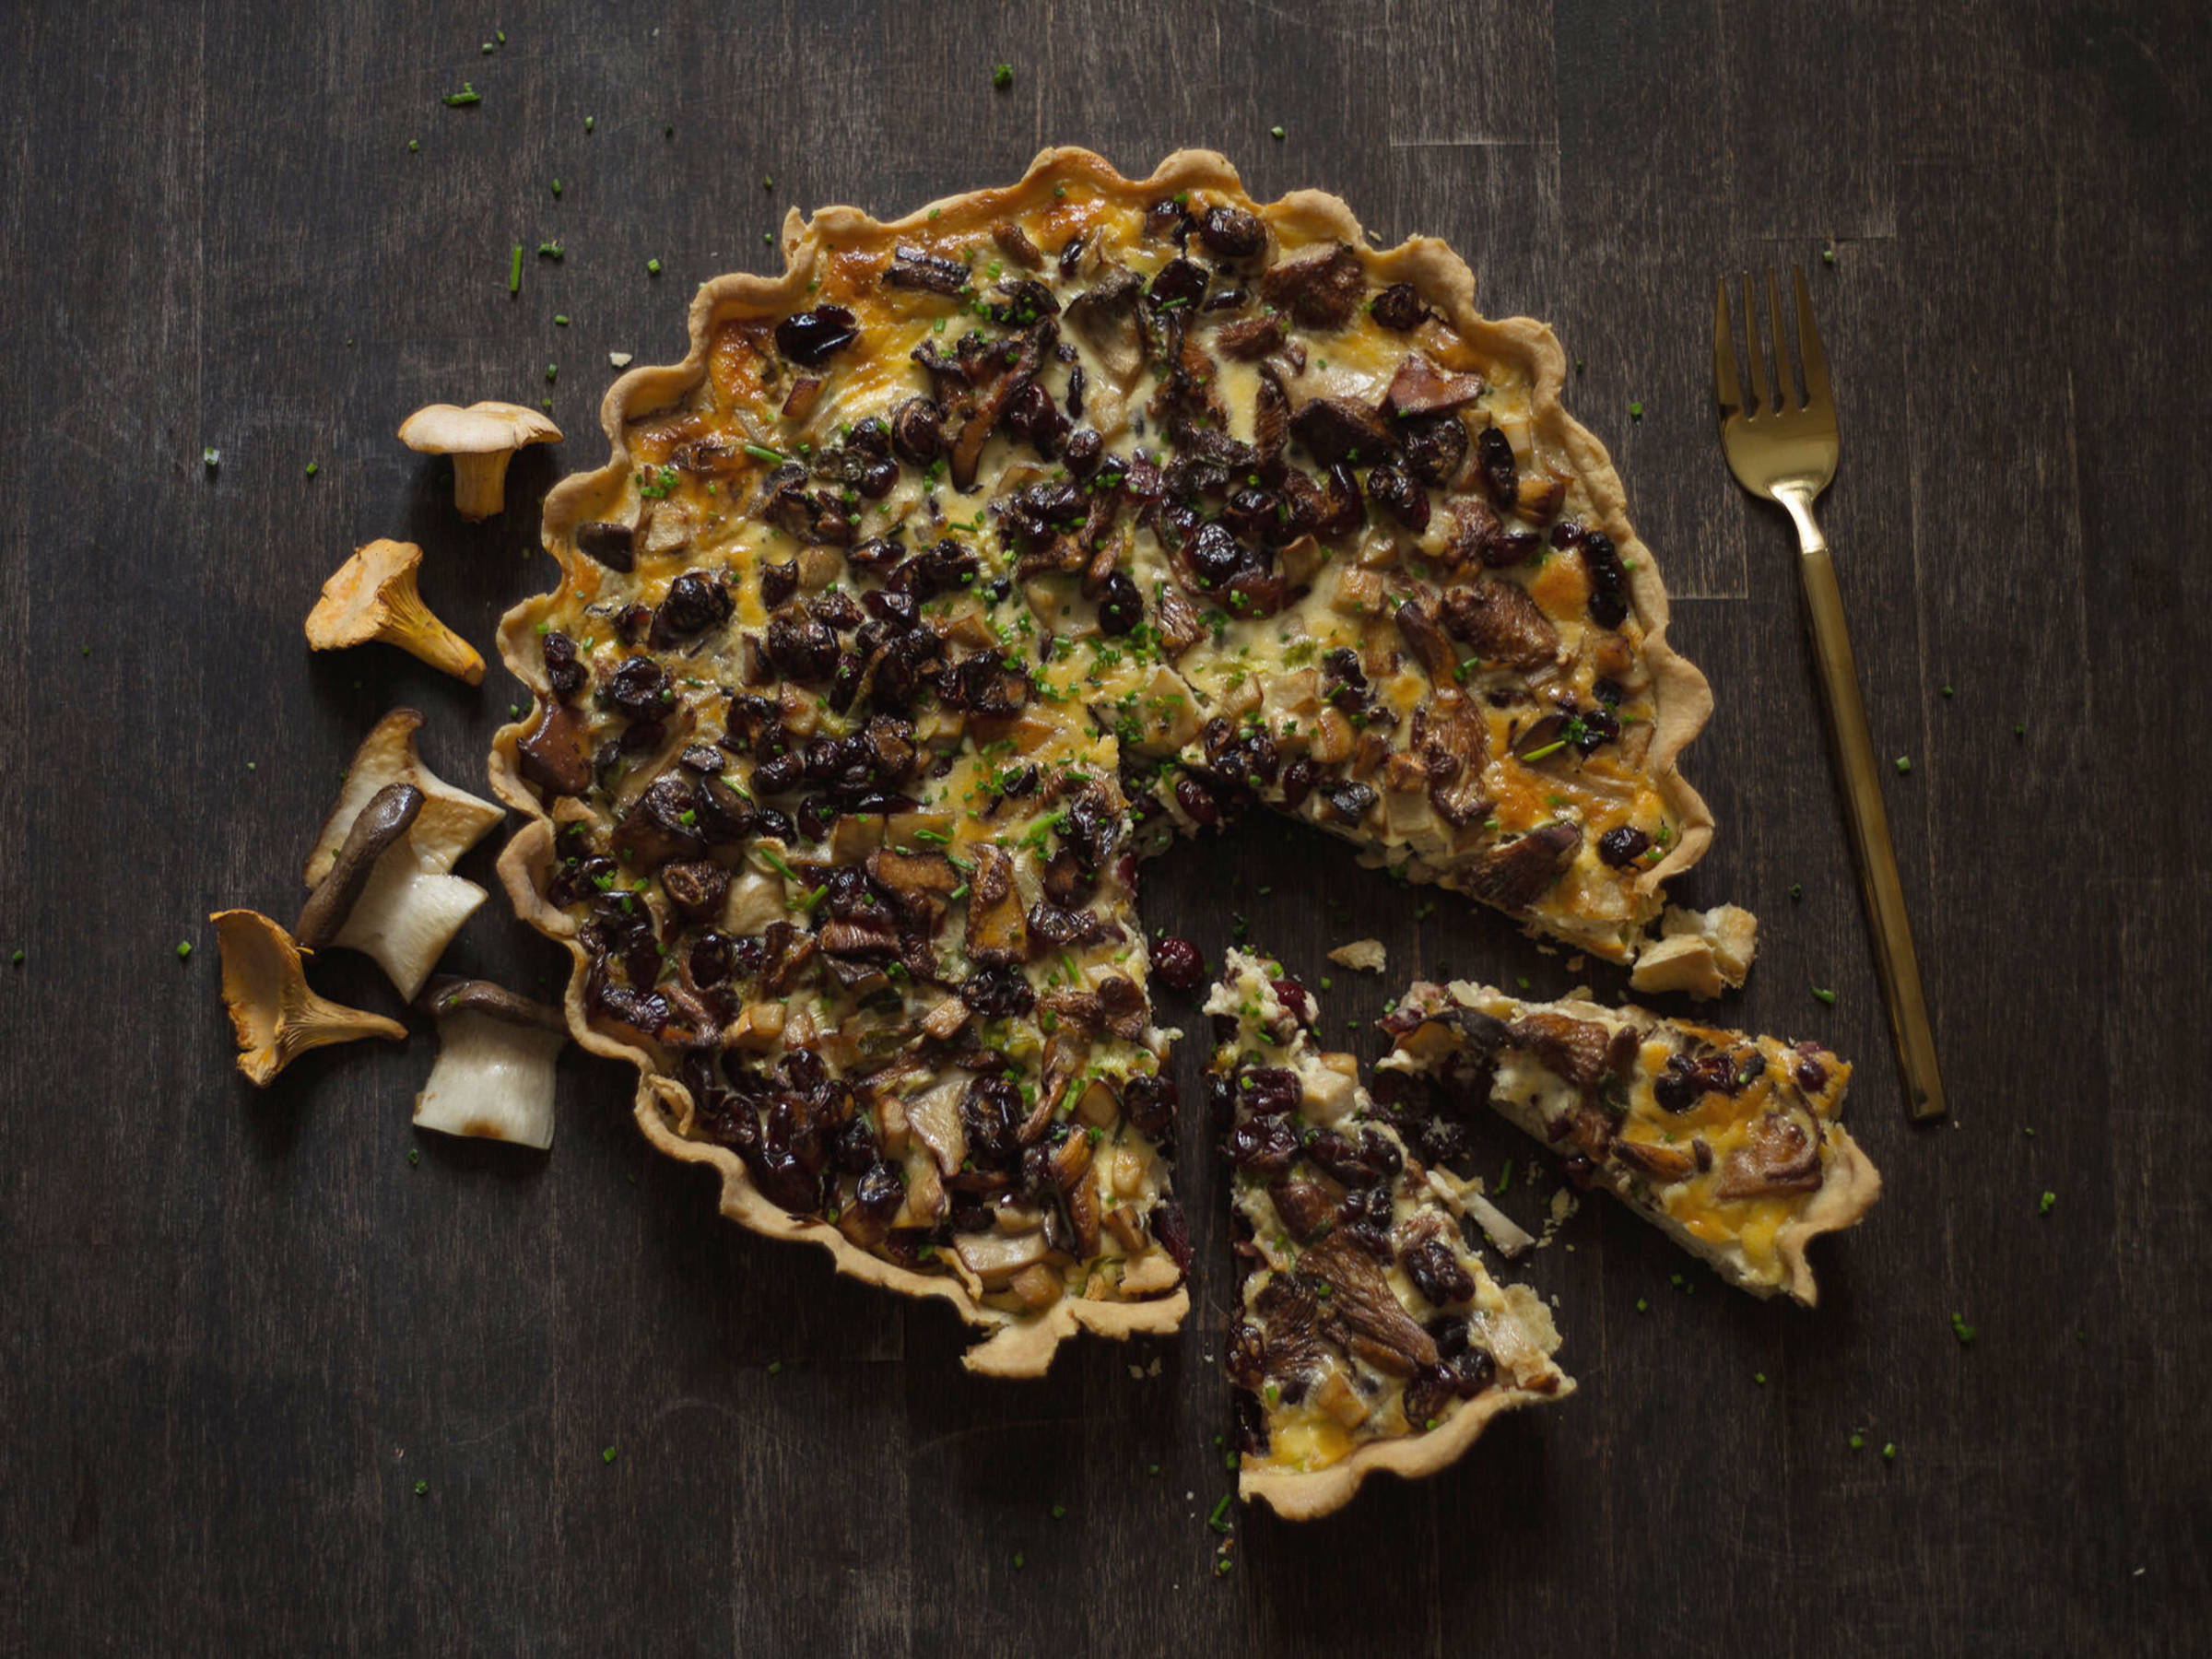 Mushroom and cranberry tart